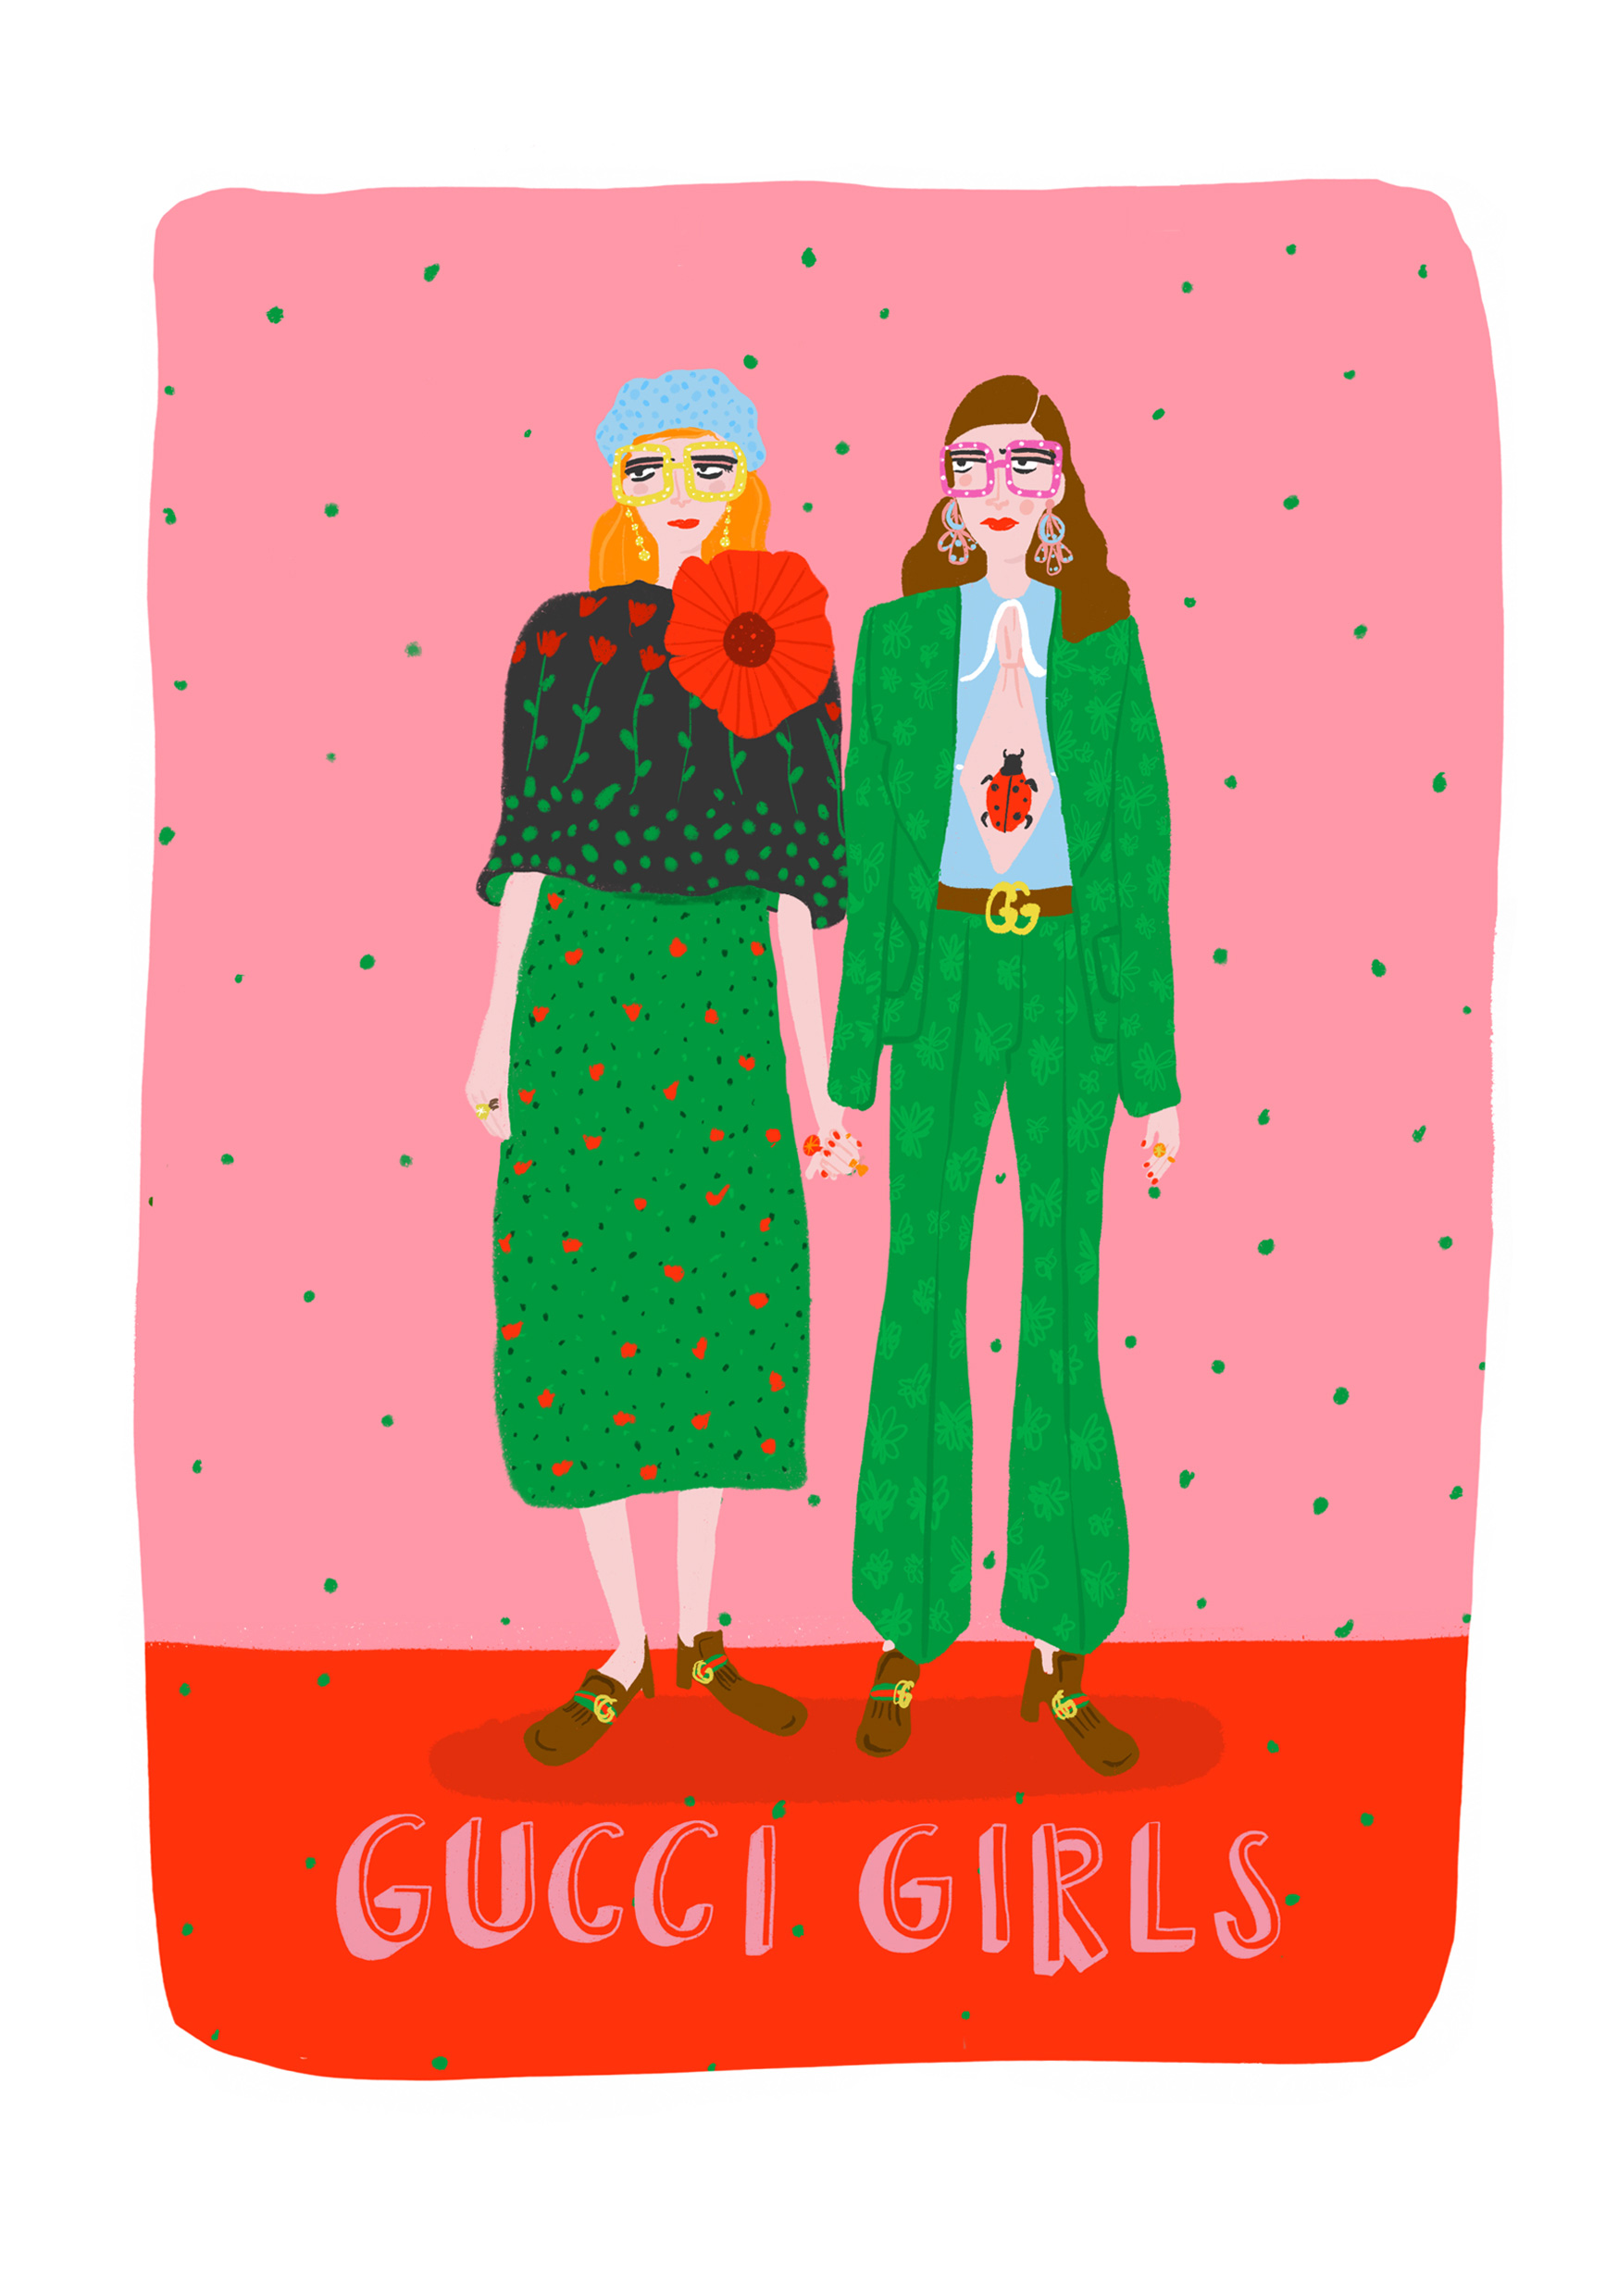 The Gucci Girls